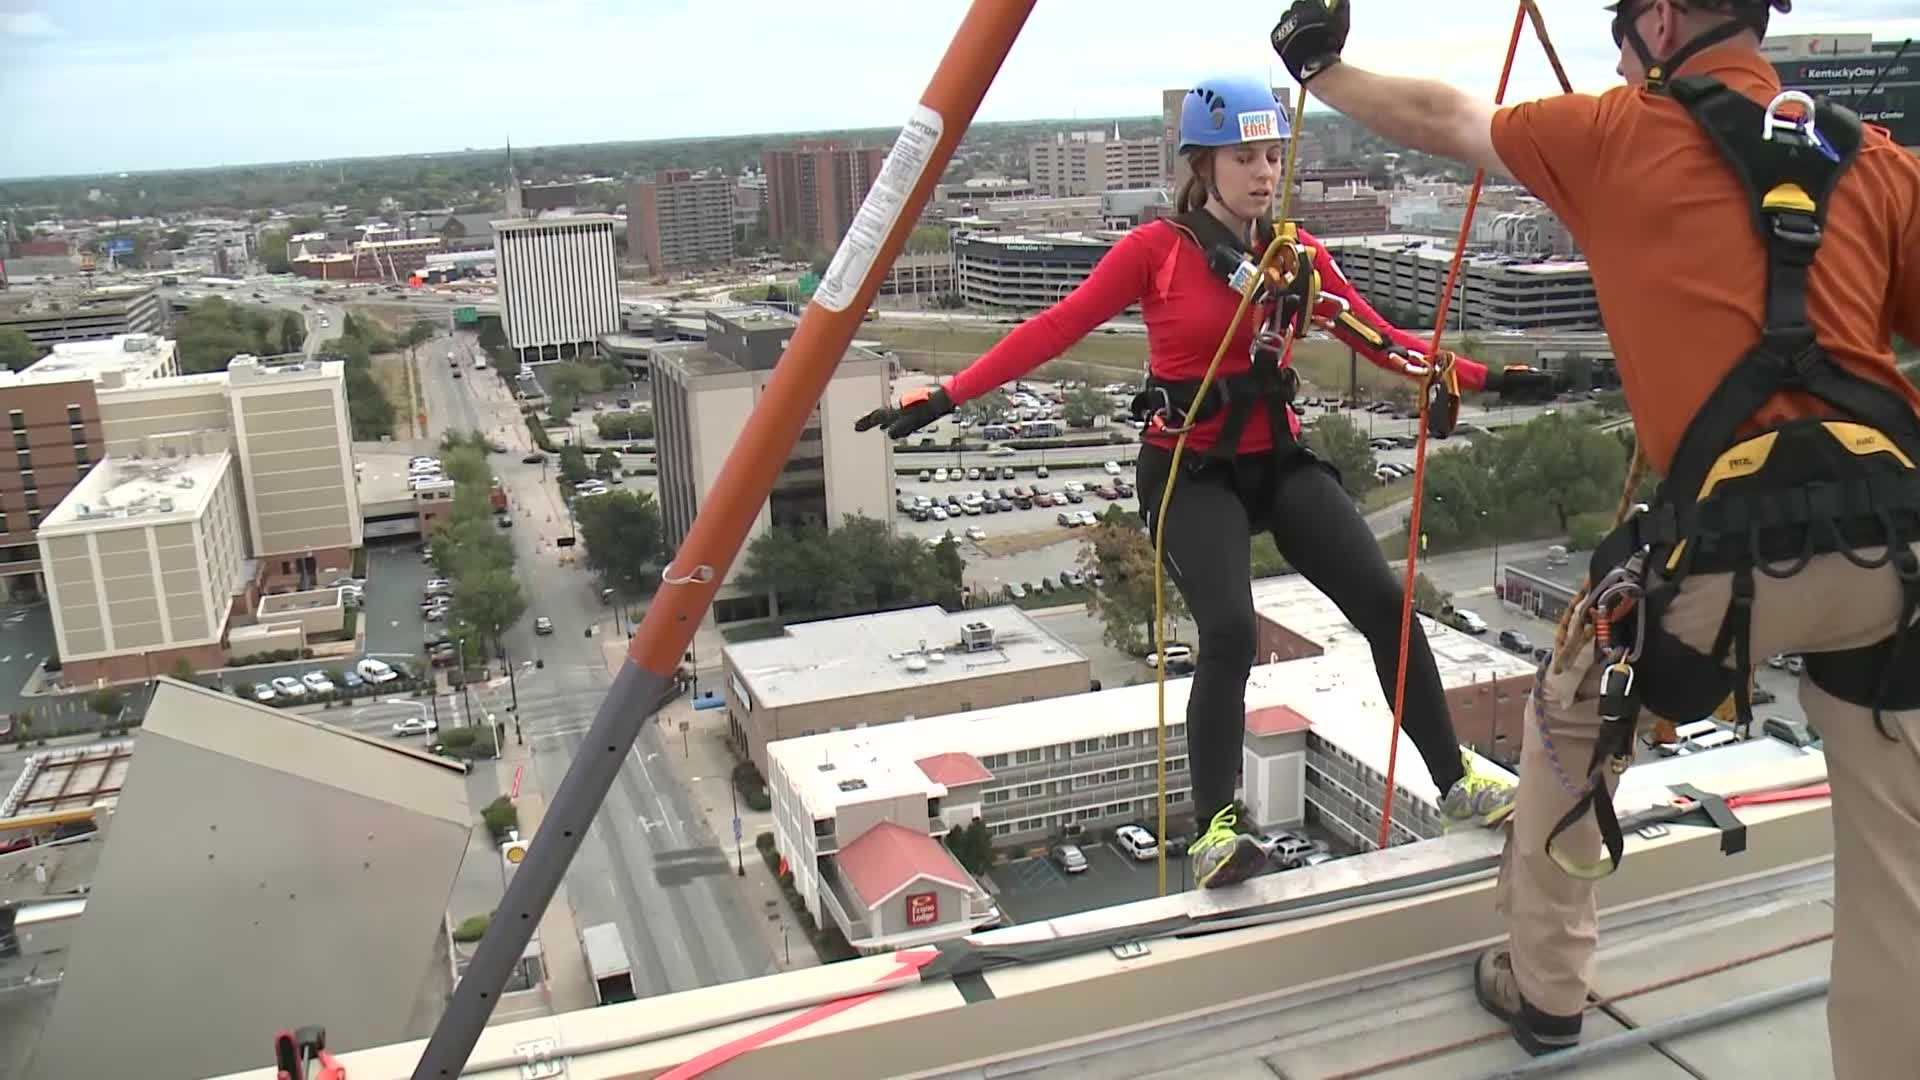 Over the Edge fundraiser held for boy scouts